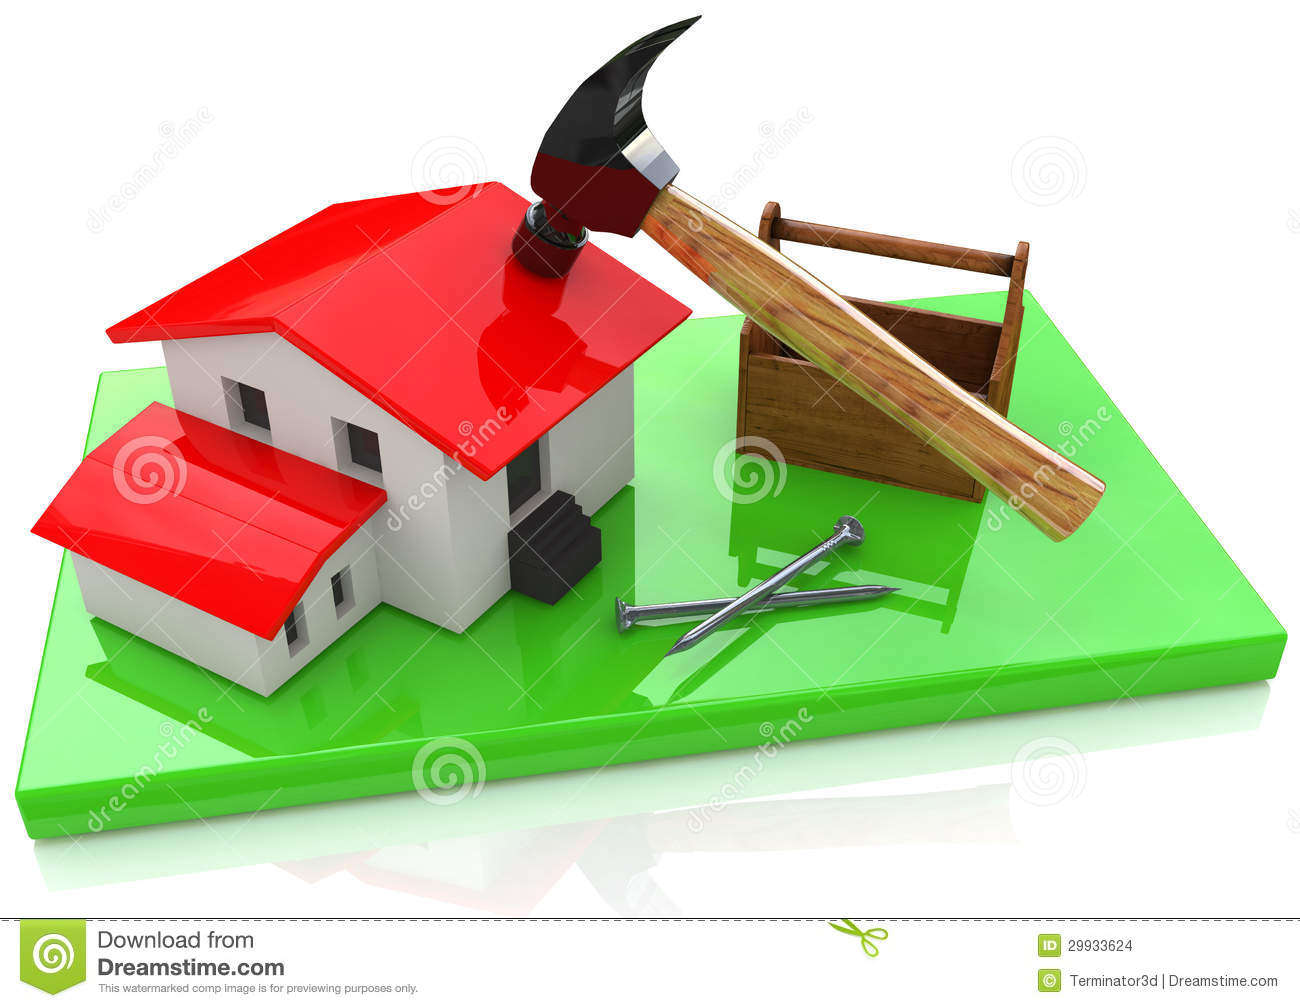 Building a house stock images image 29933624 for Building a dog kennel business